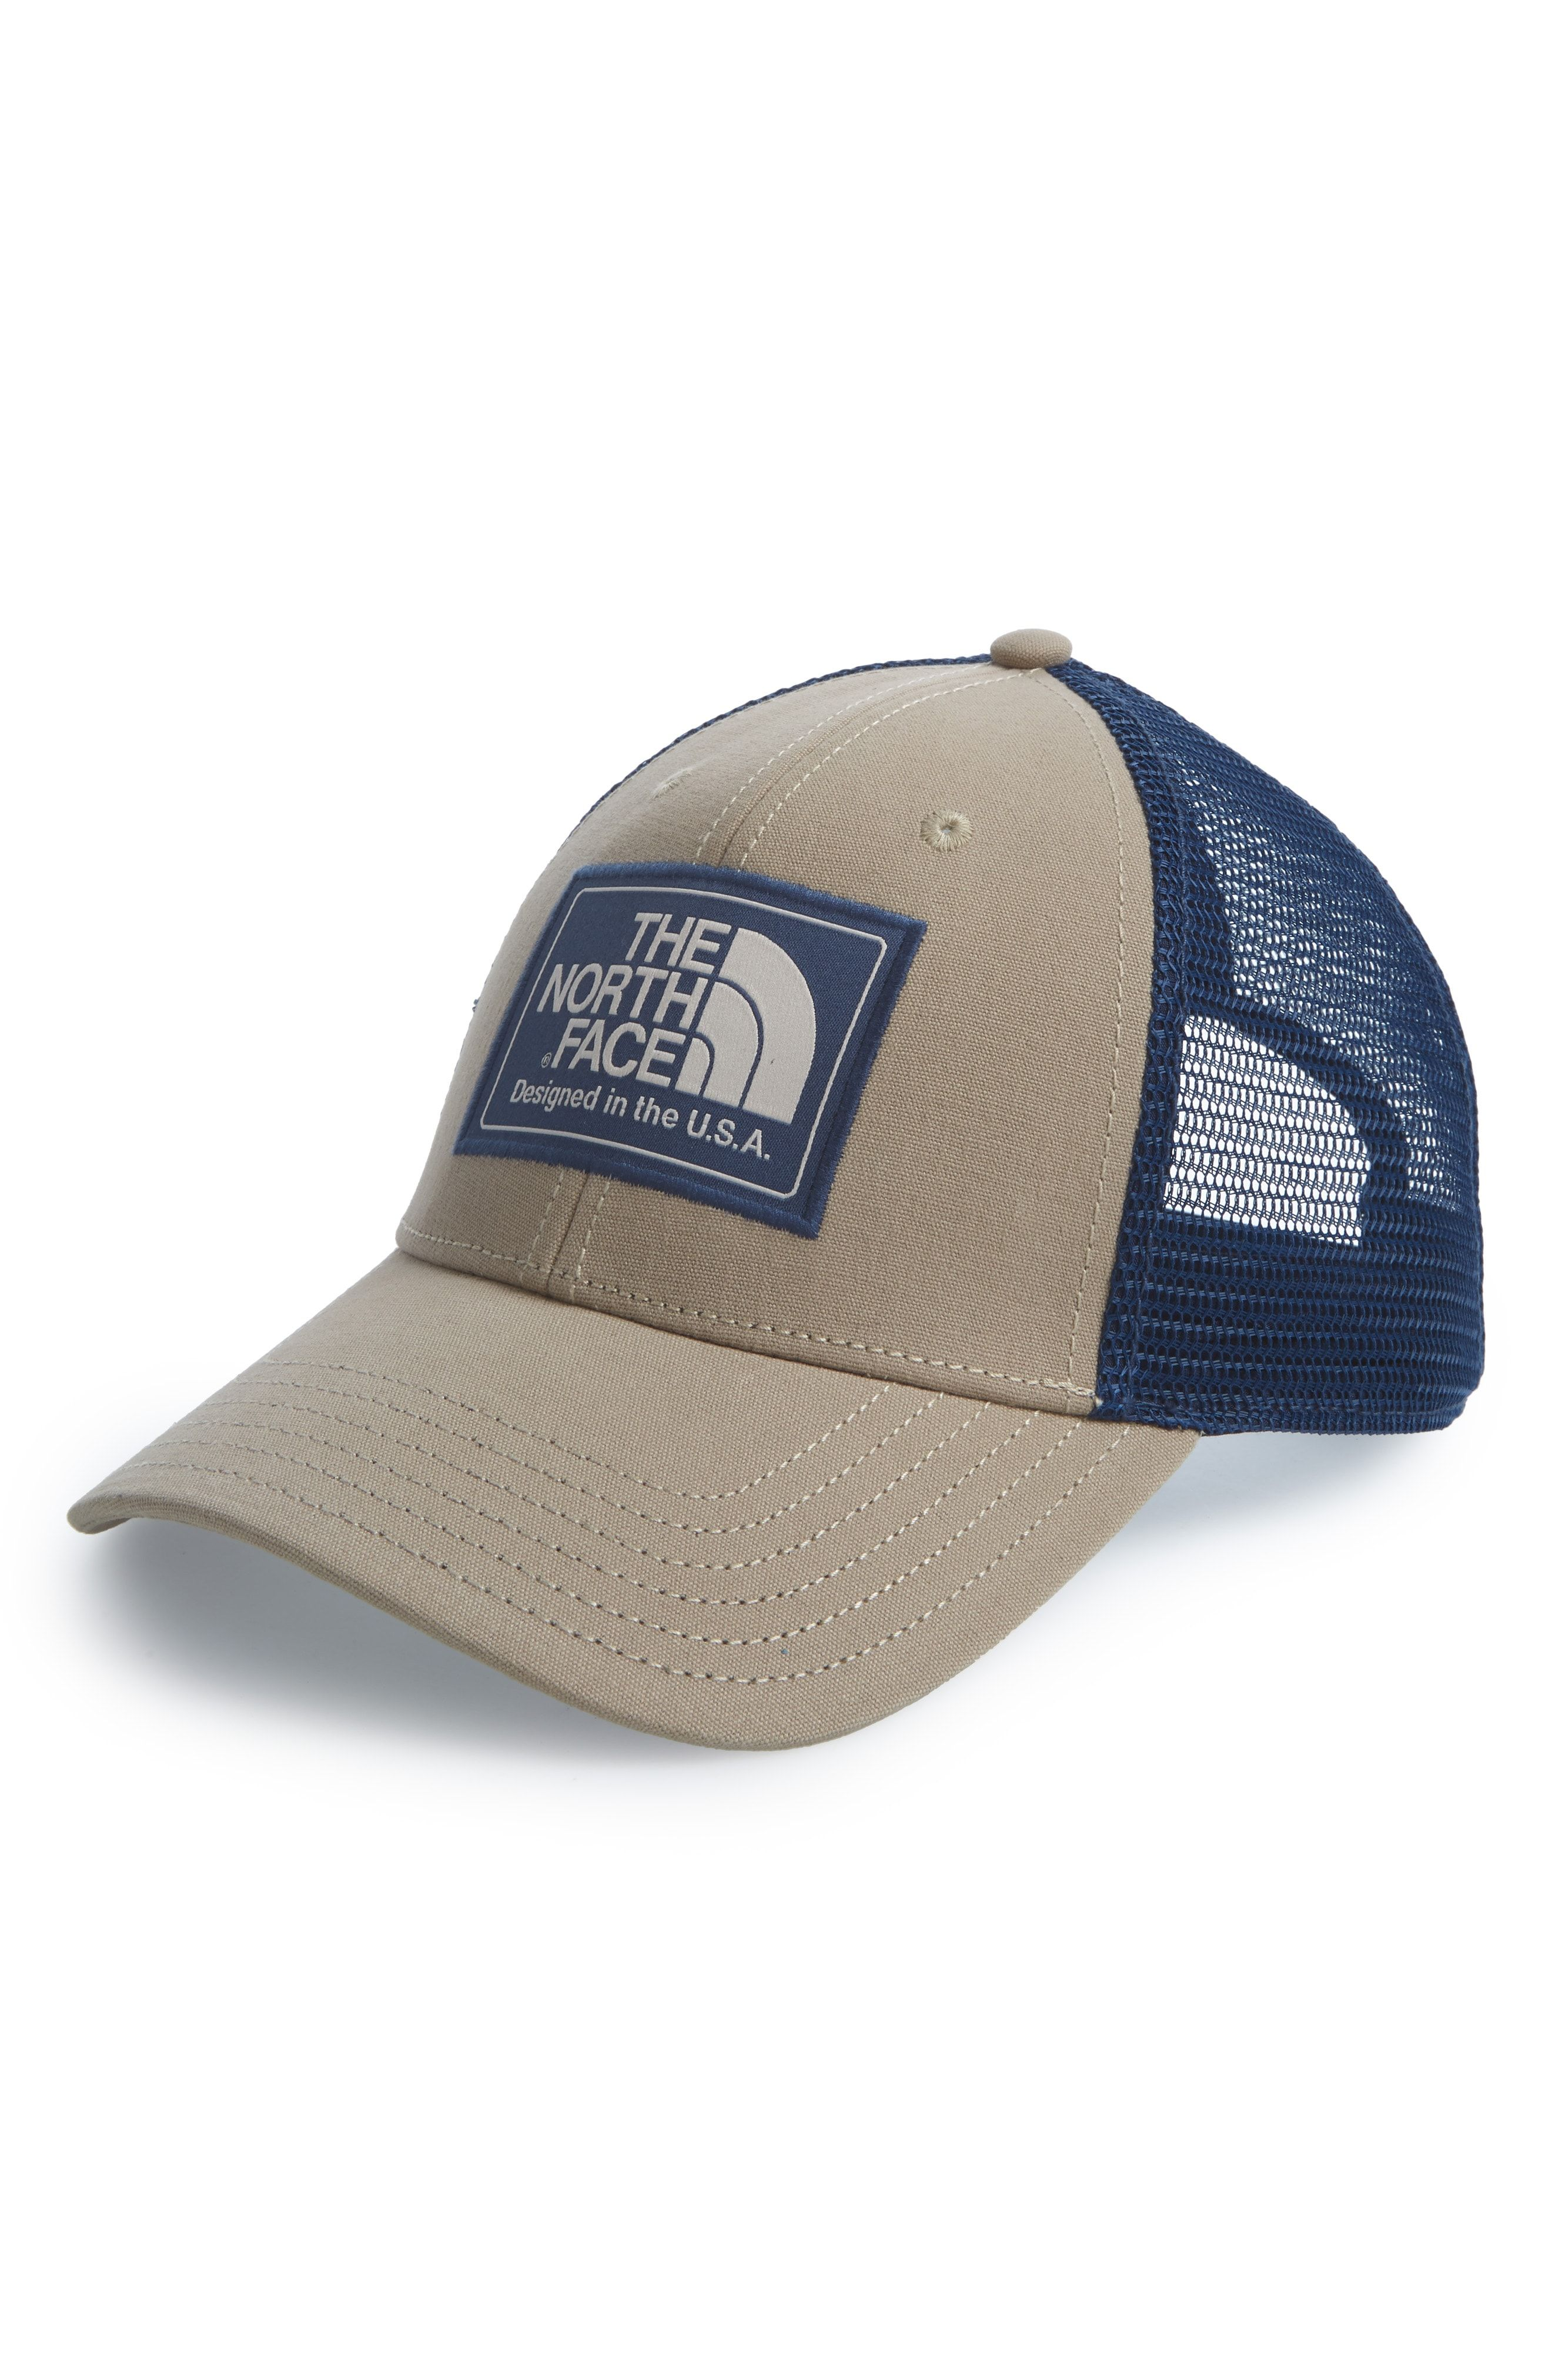 8cb5411e3dcf3 THE NORTH FACE MUDDER TRUCKER HAT - BEIGE.  thenorthface